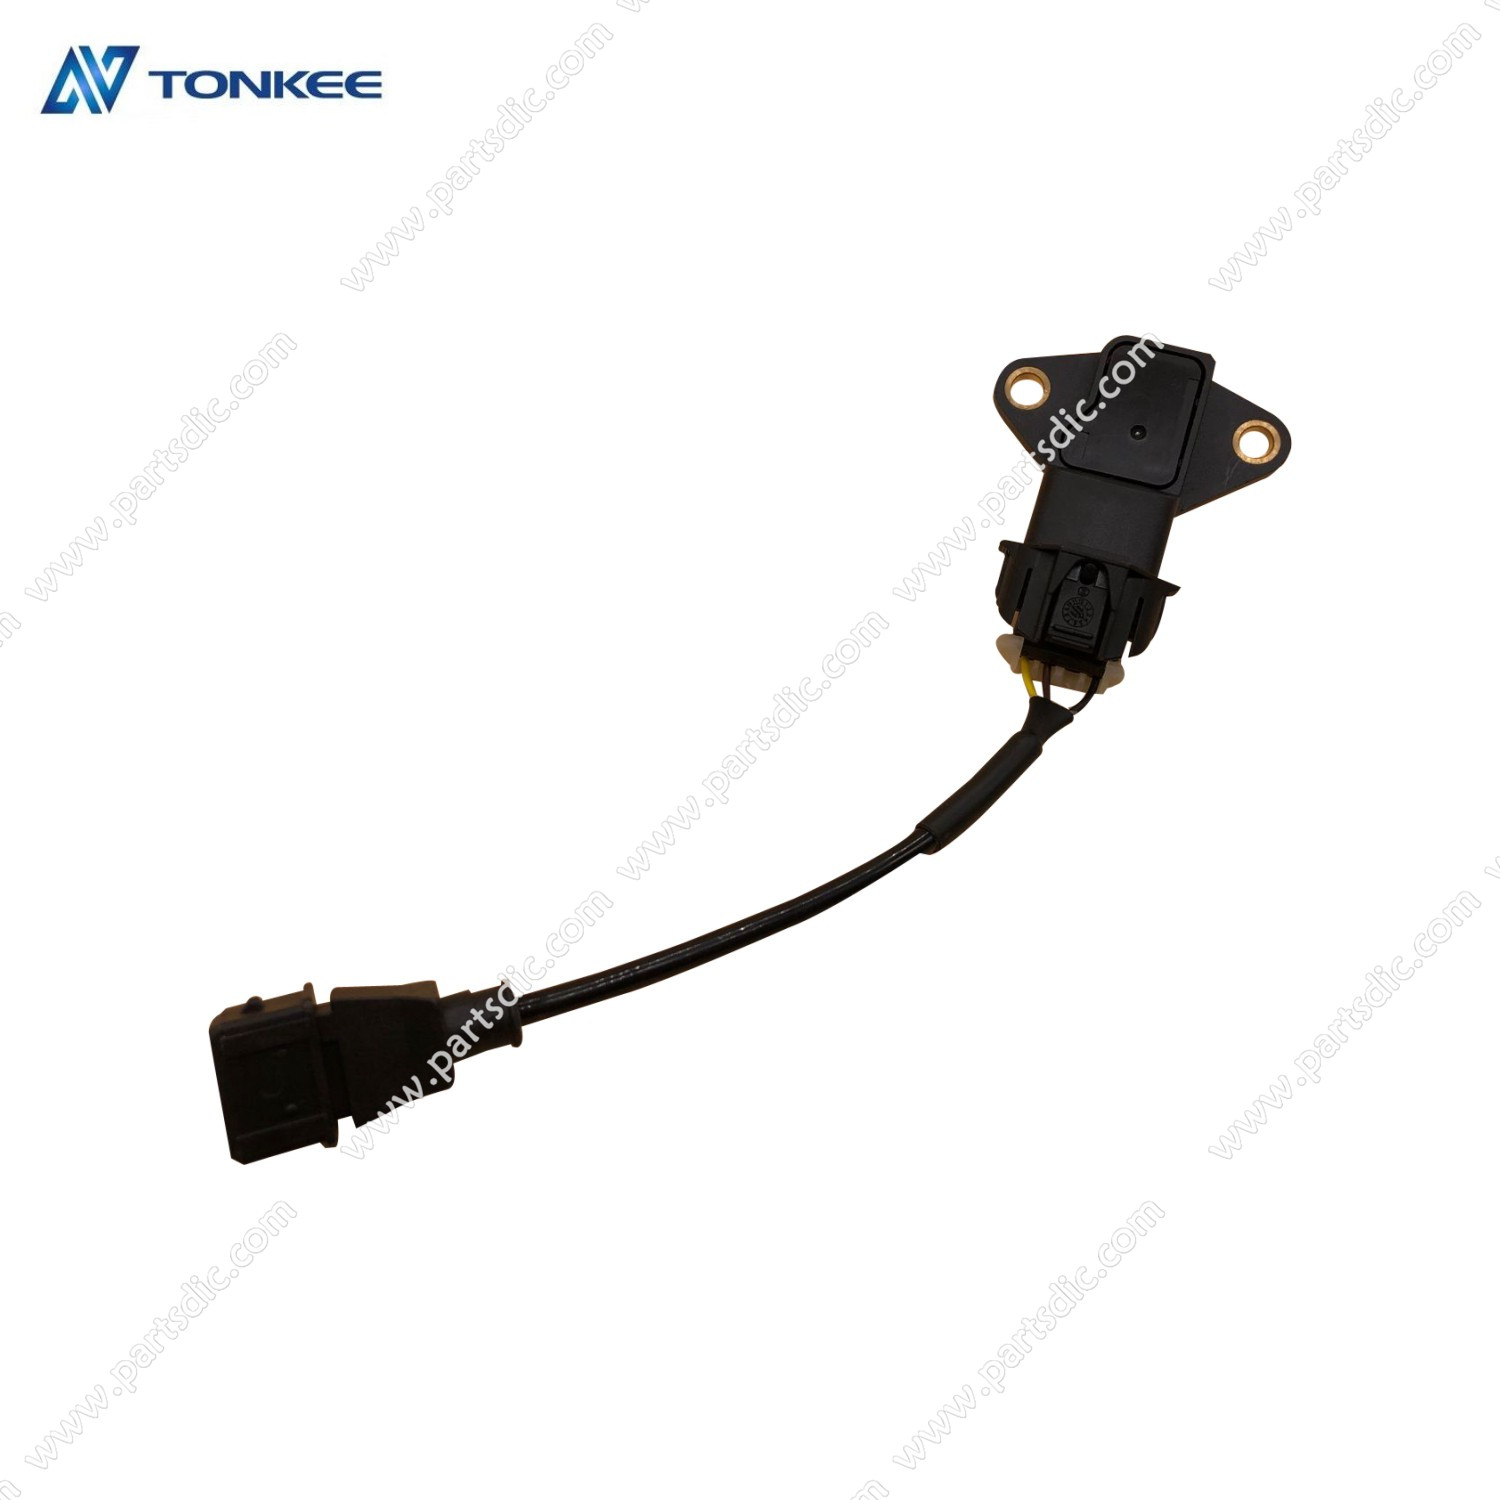 VOE20450693 Booster pressure sensor EC160B EC180B EC290B EC240B EW160B EW180B EW200B EW145Bcable and battery disconnector sensor